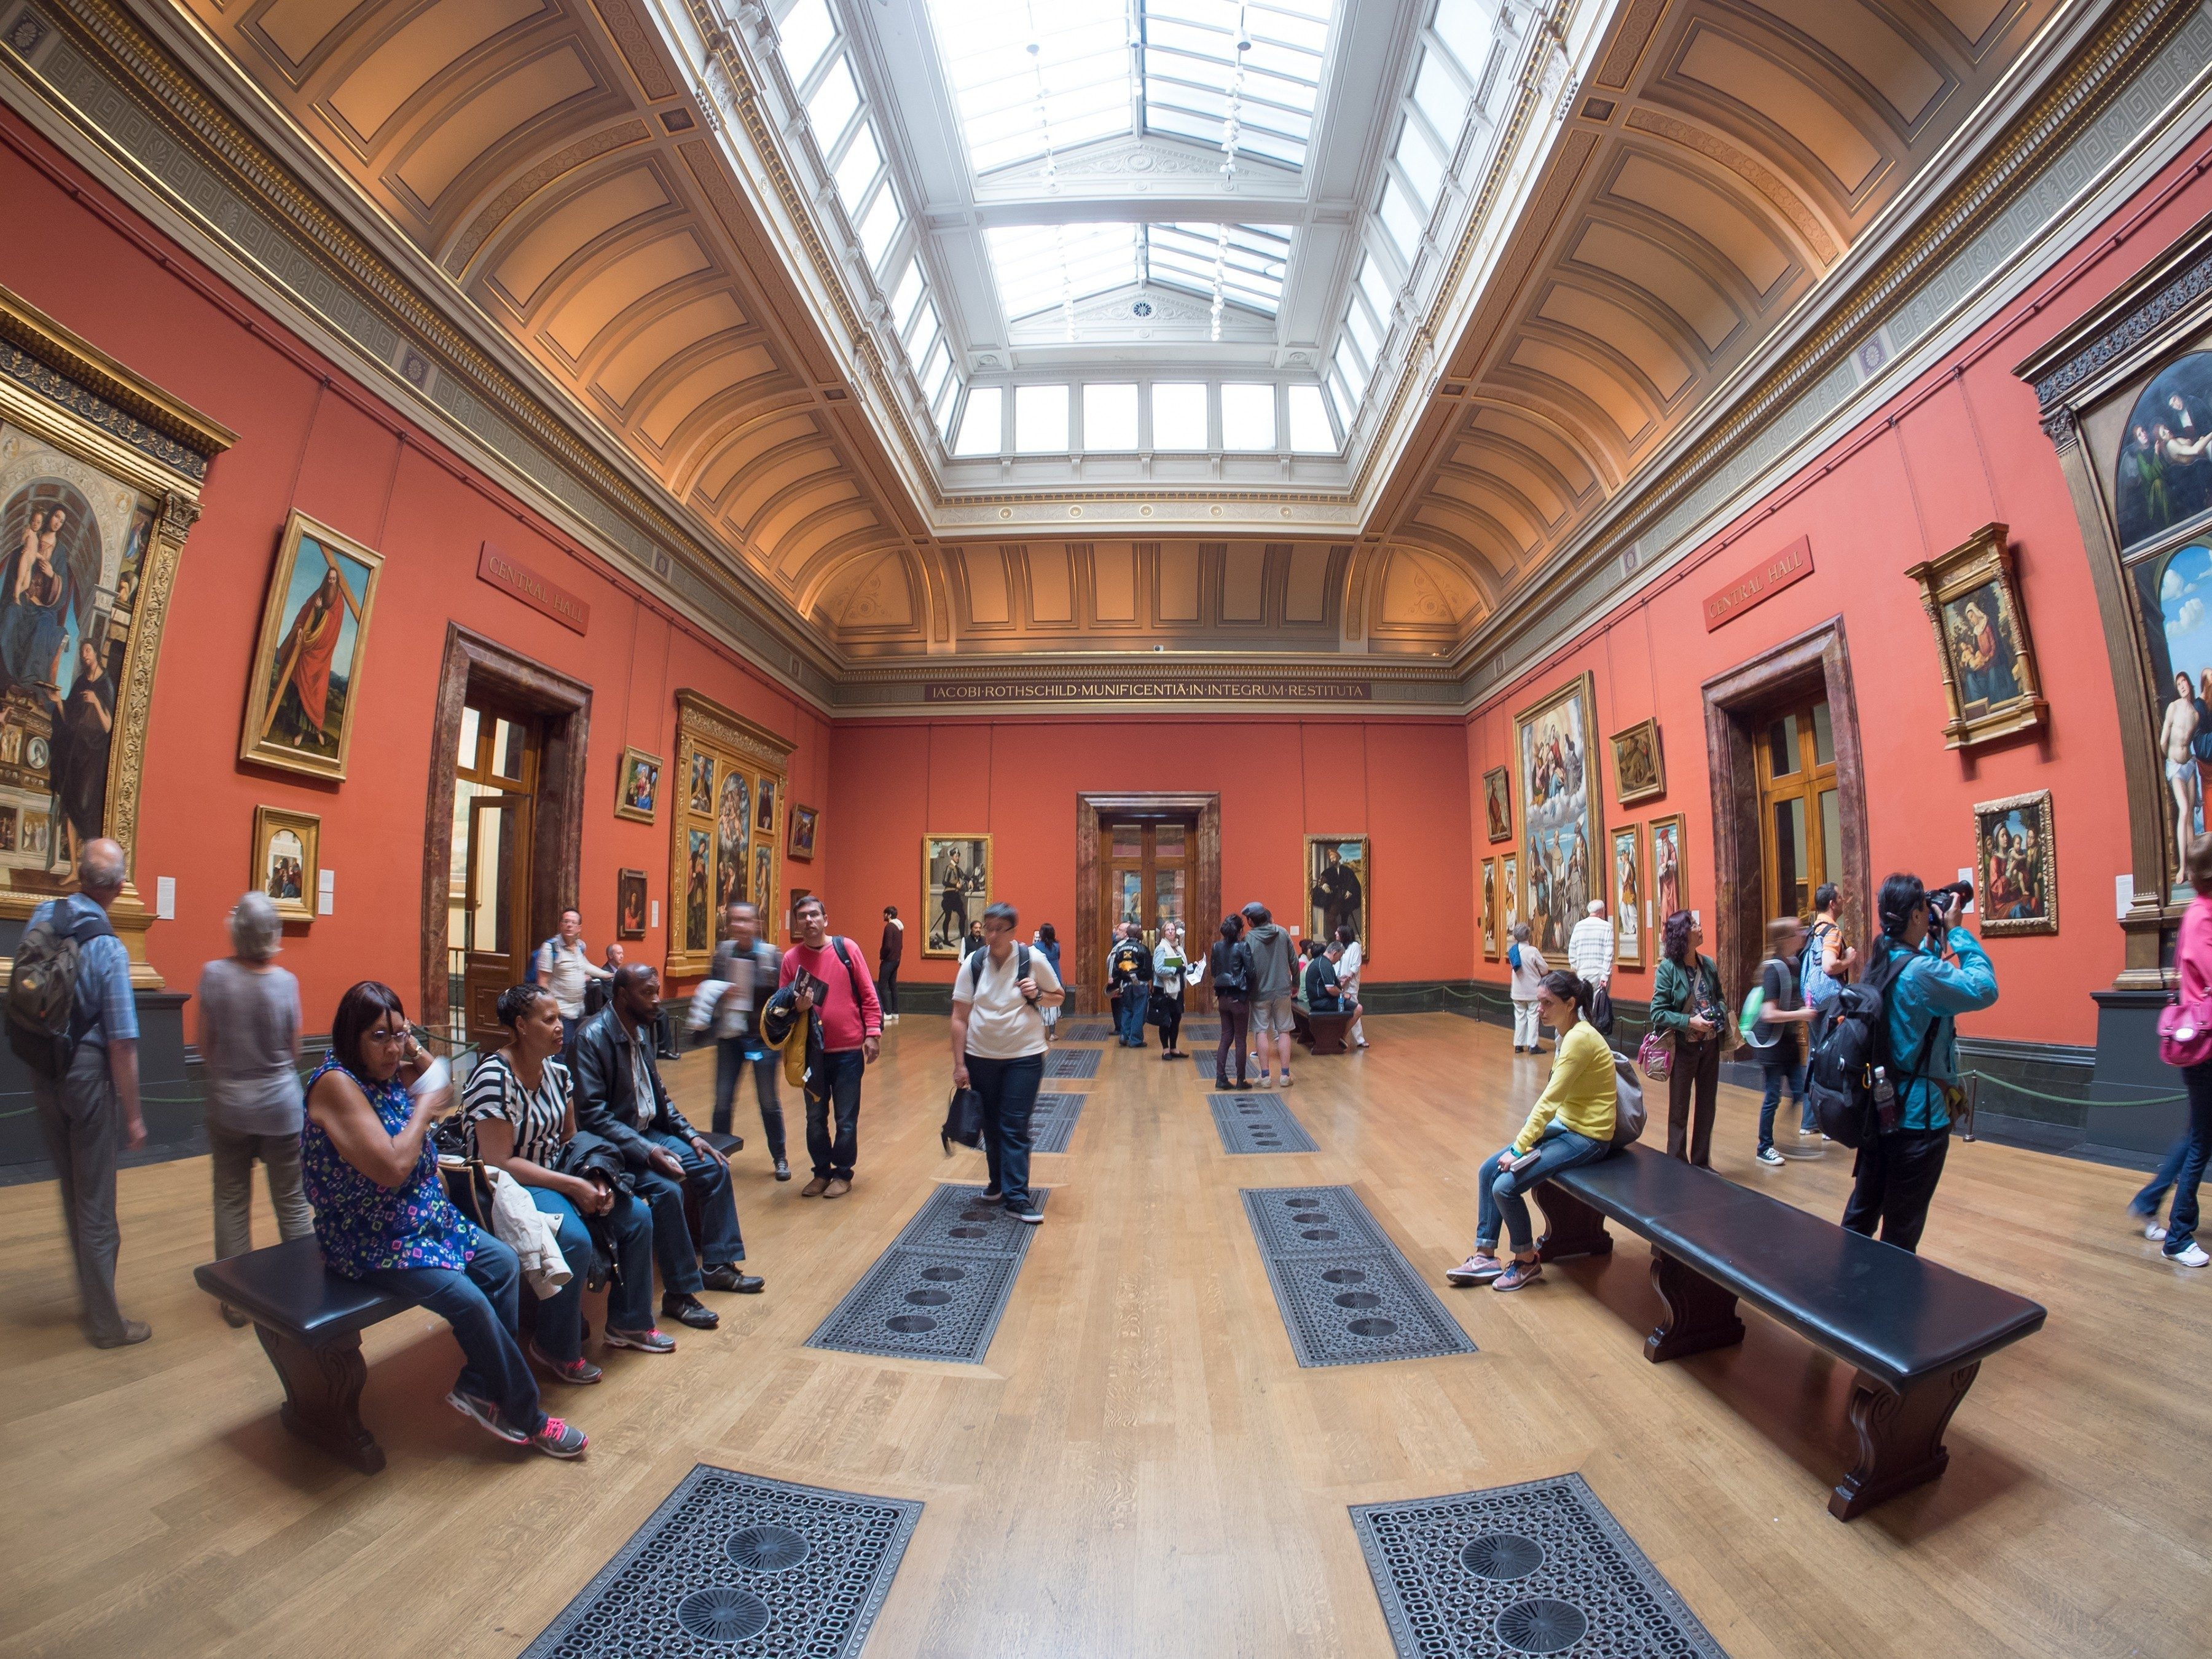 London attractions: National Gallery